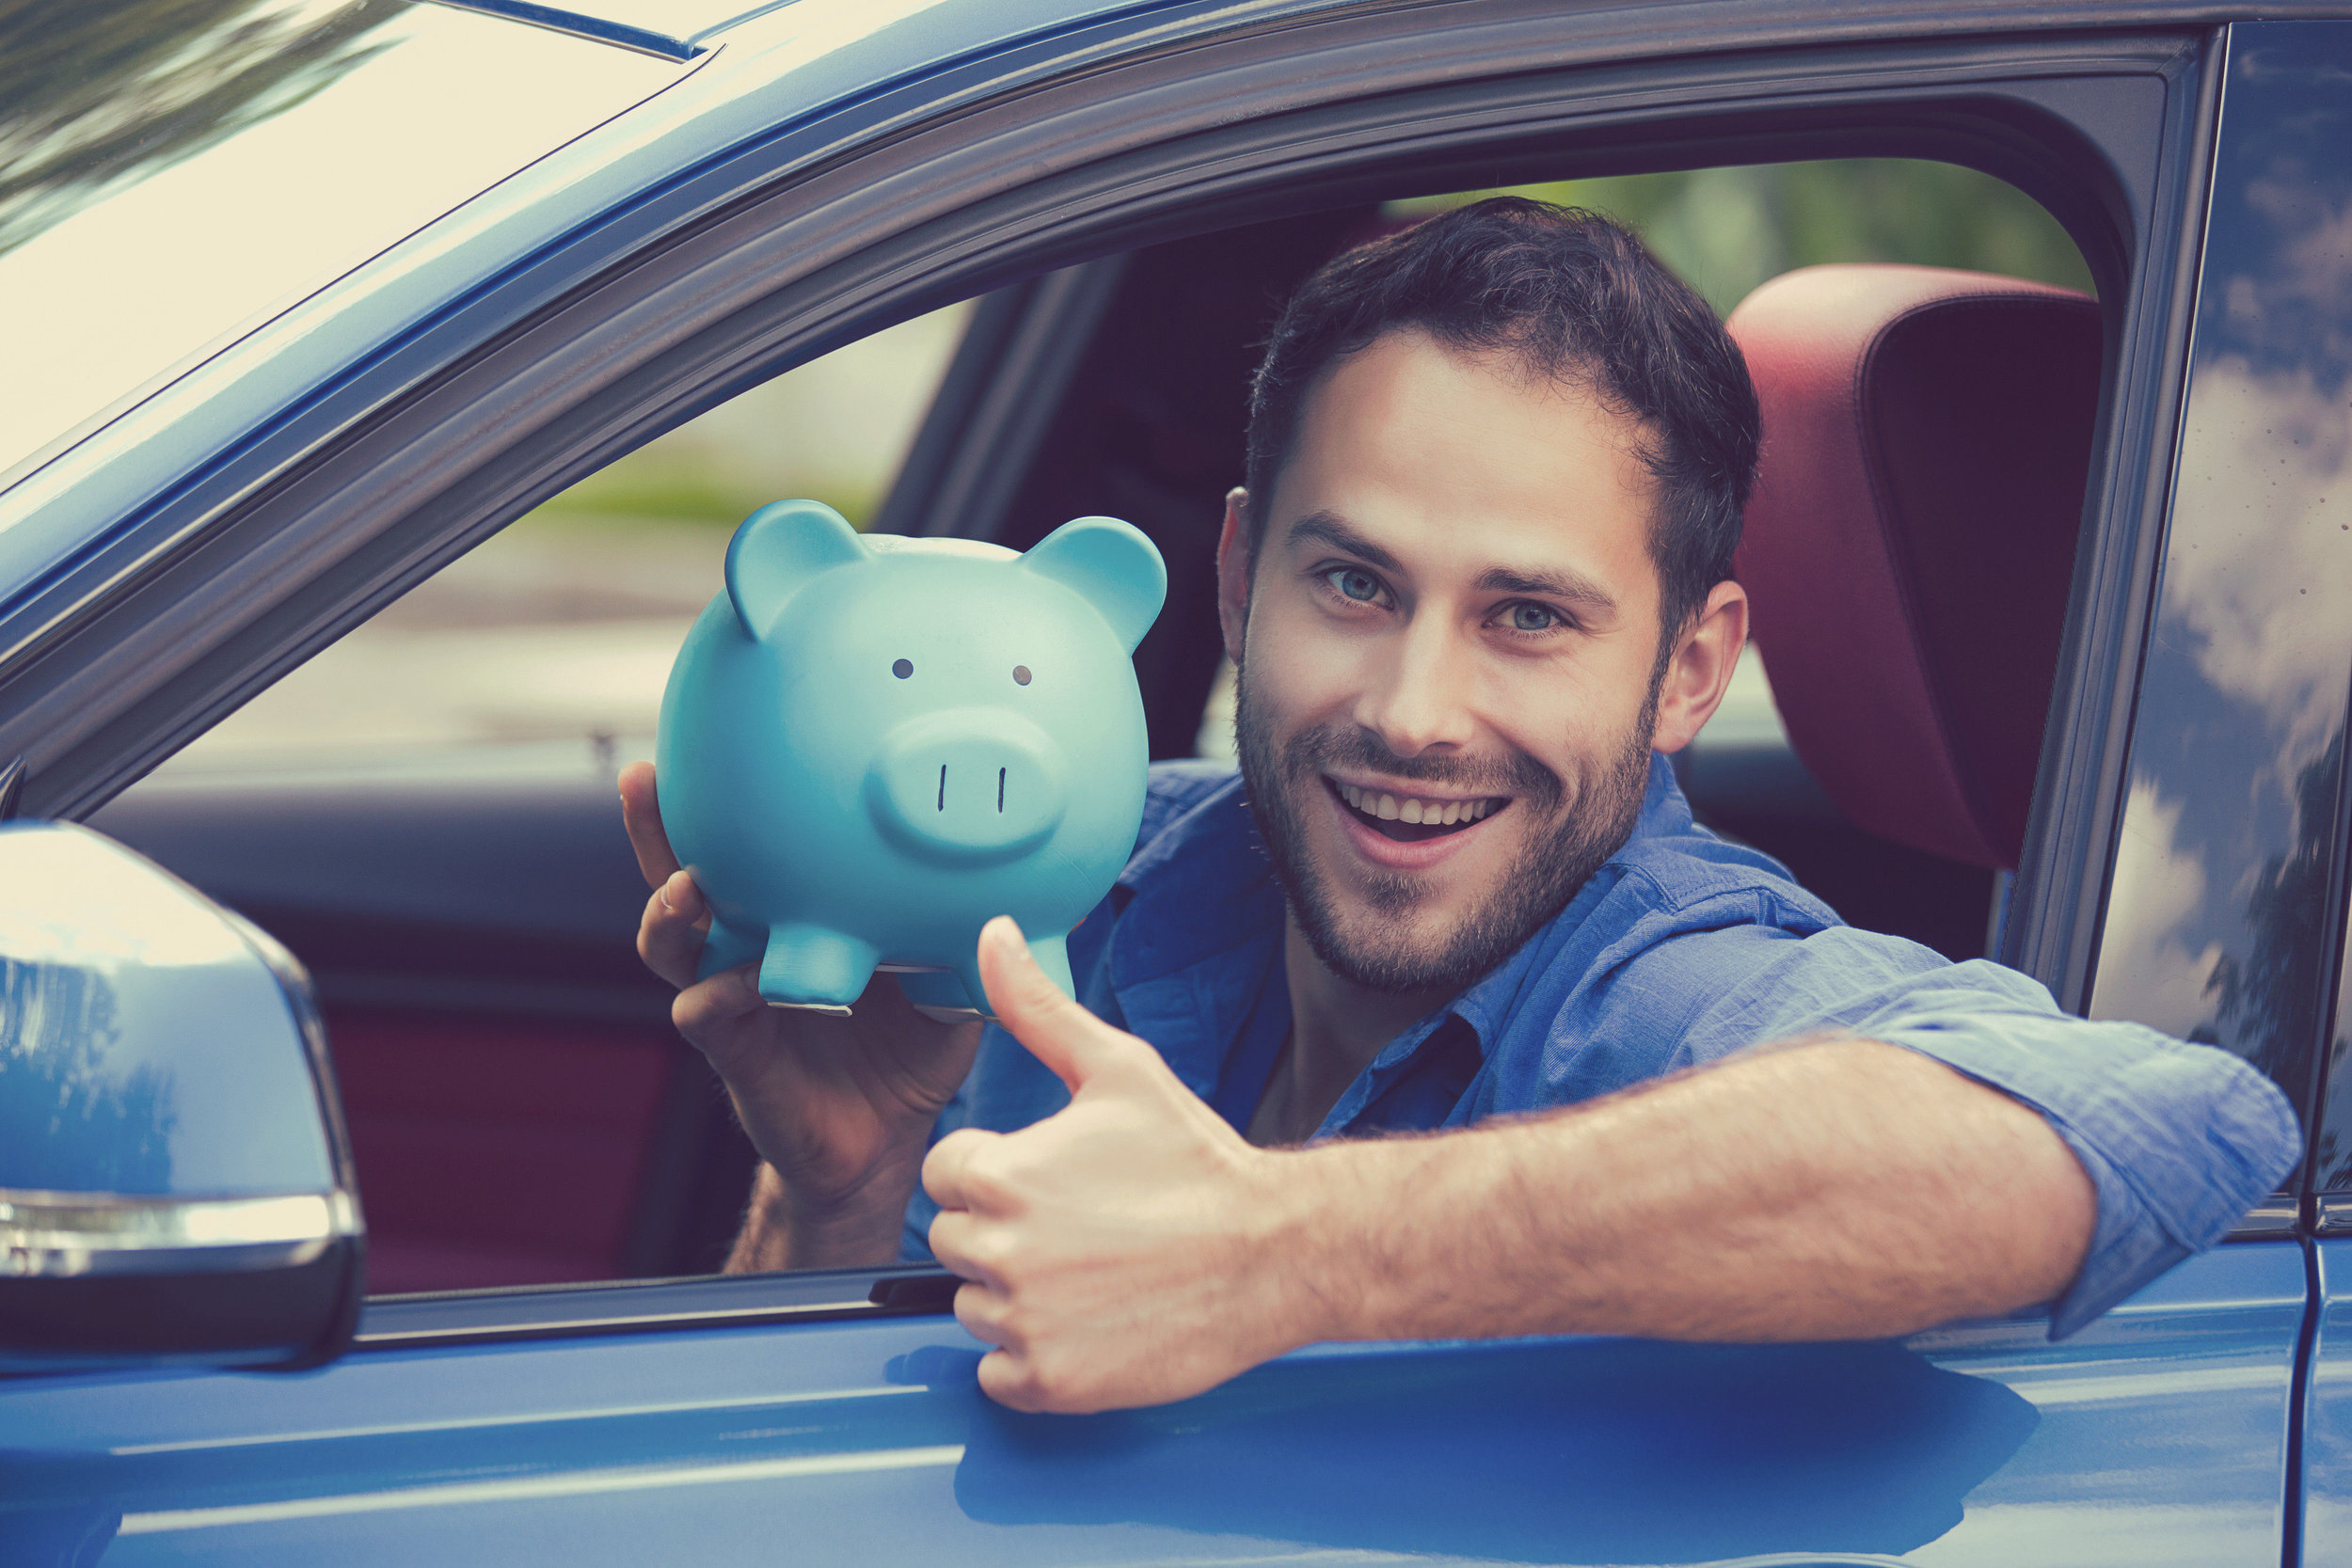 BEST PRICE IN AN INSTANT - At AAA Wreckers, whether your once shiny new vehicle is now a clunker that sits in the yard, or it is time to upgrade to a newer model, we will provide you with an instant cash offer up to $9999